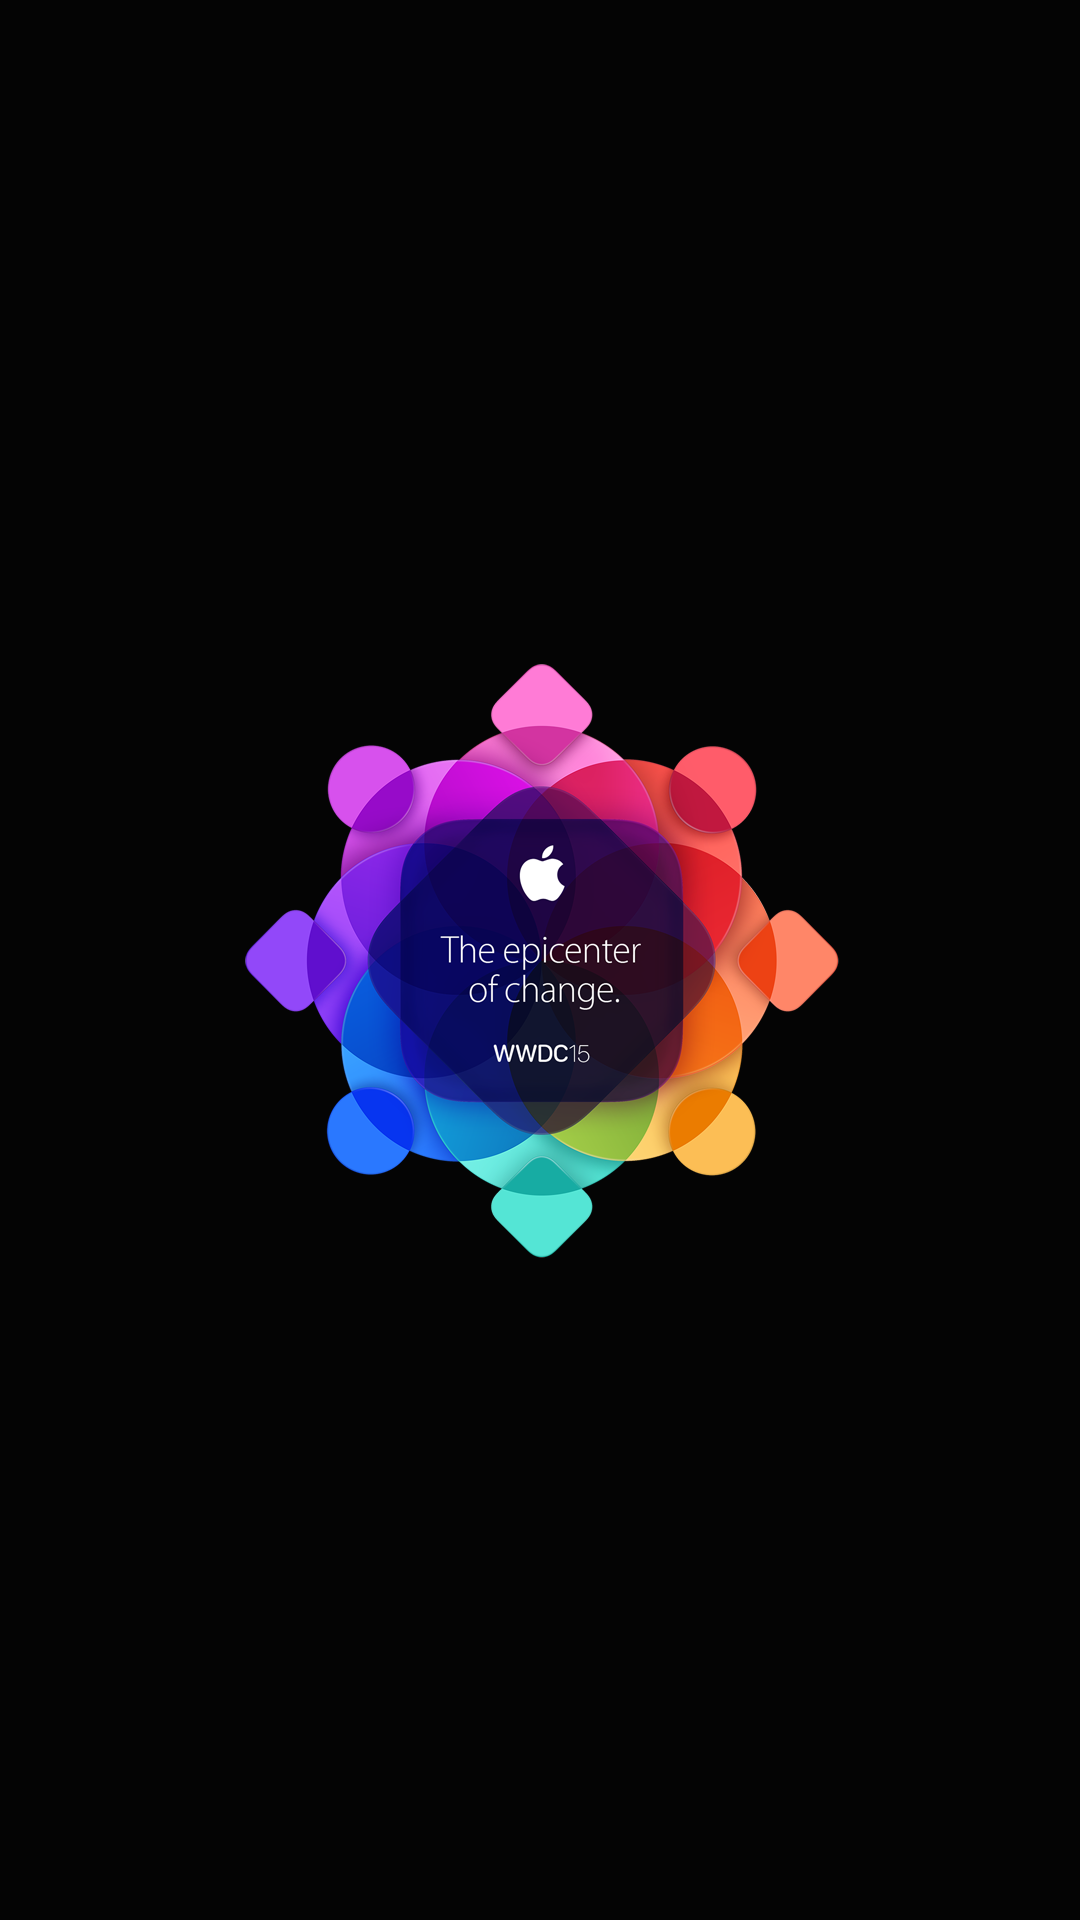 WWDC-2015-Wallpaper-for-iPhone-6-Plus-Black-Edition